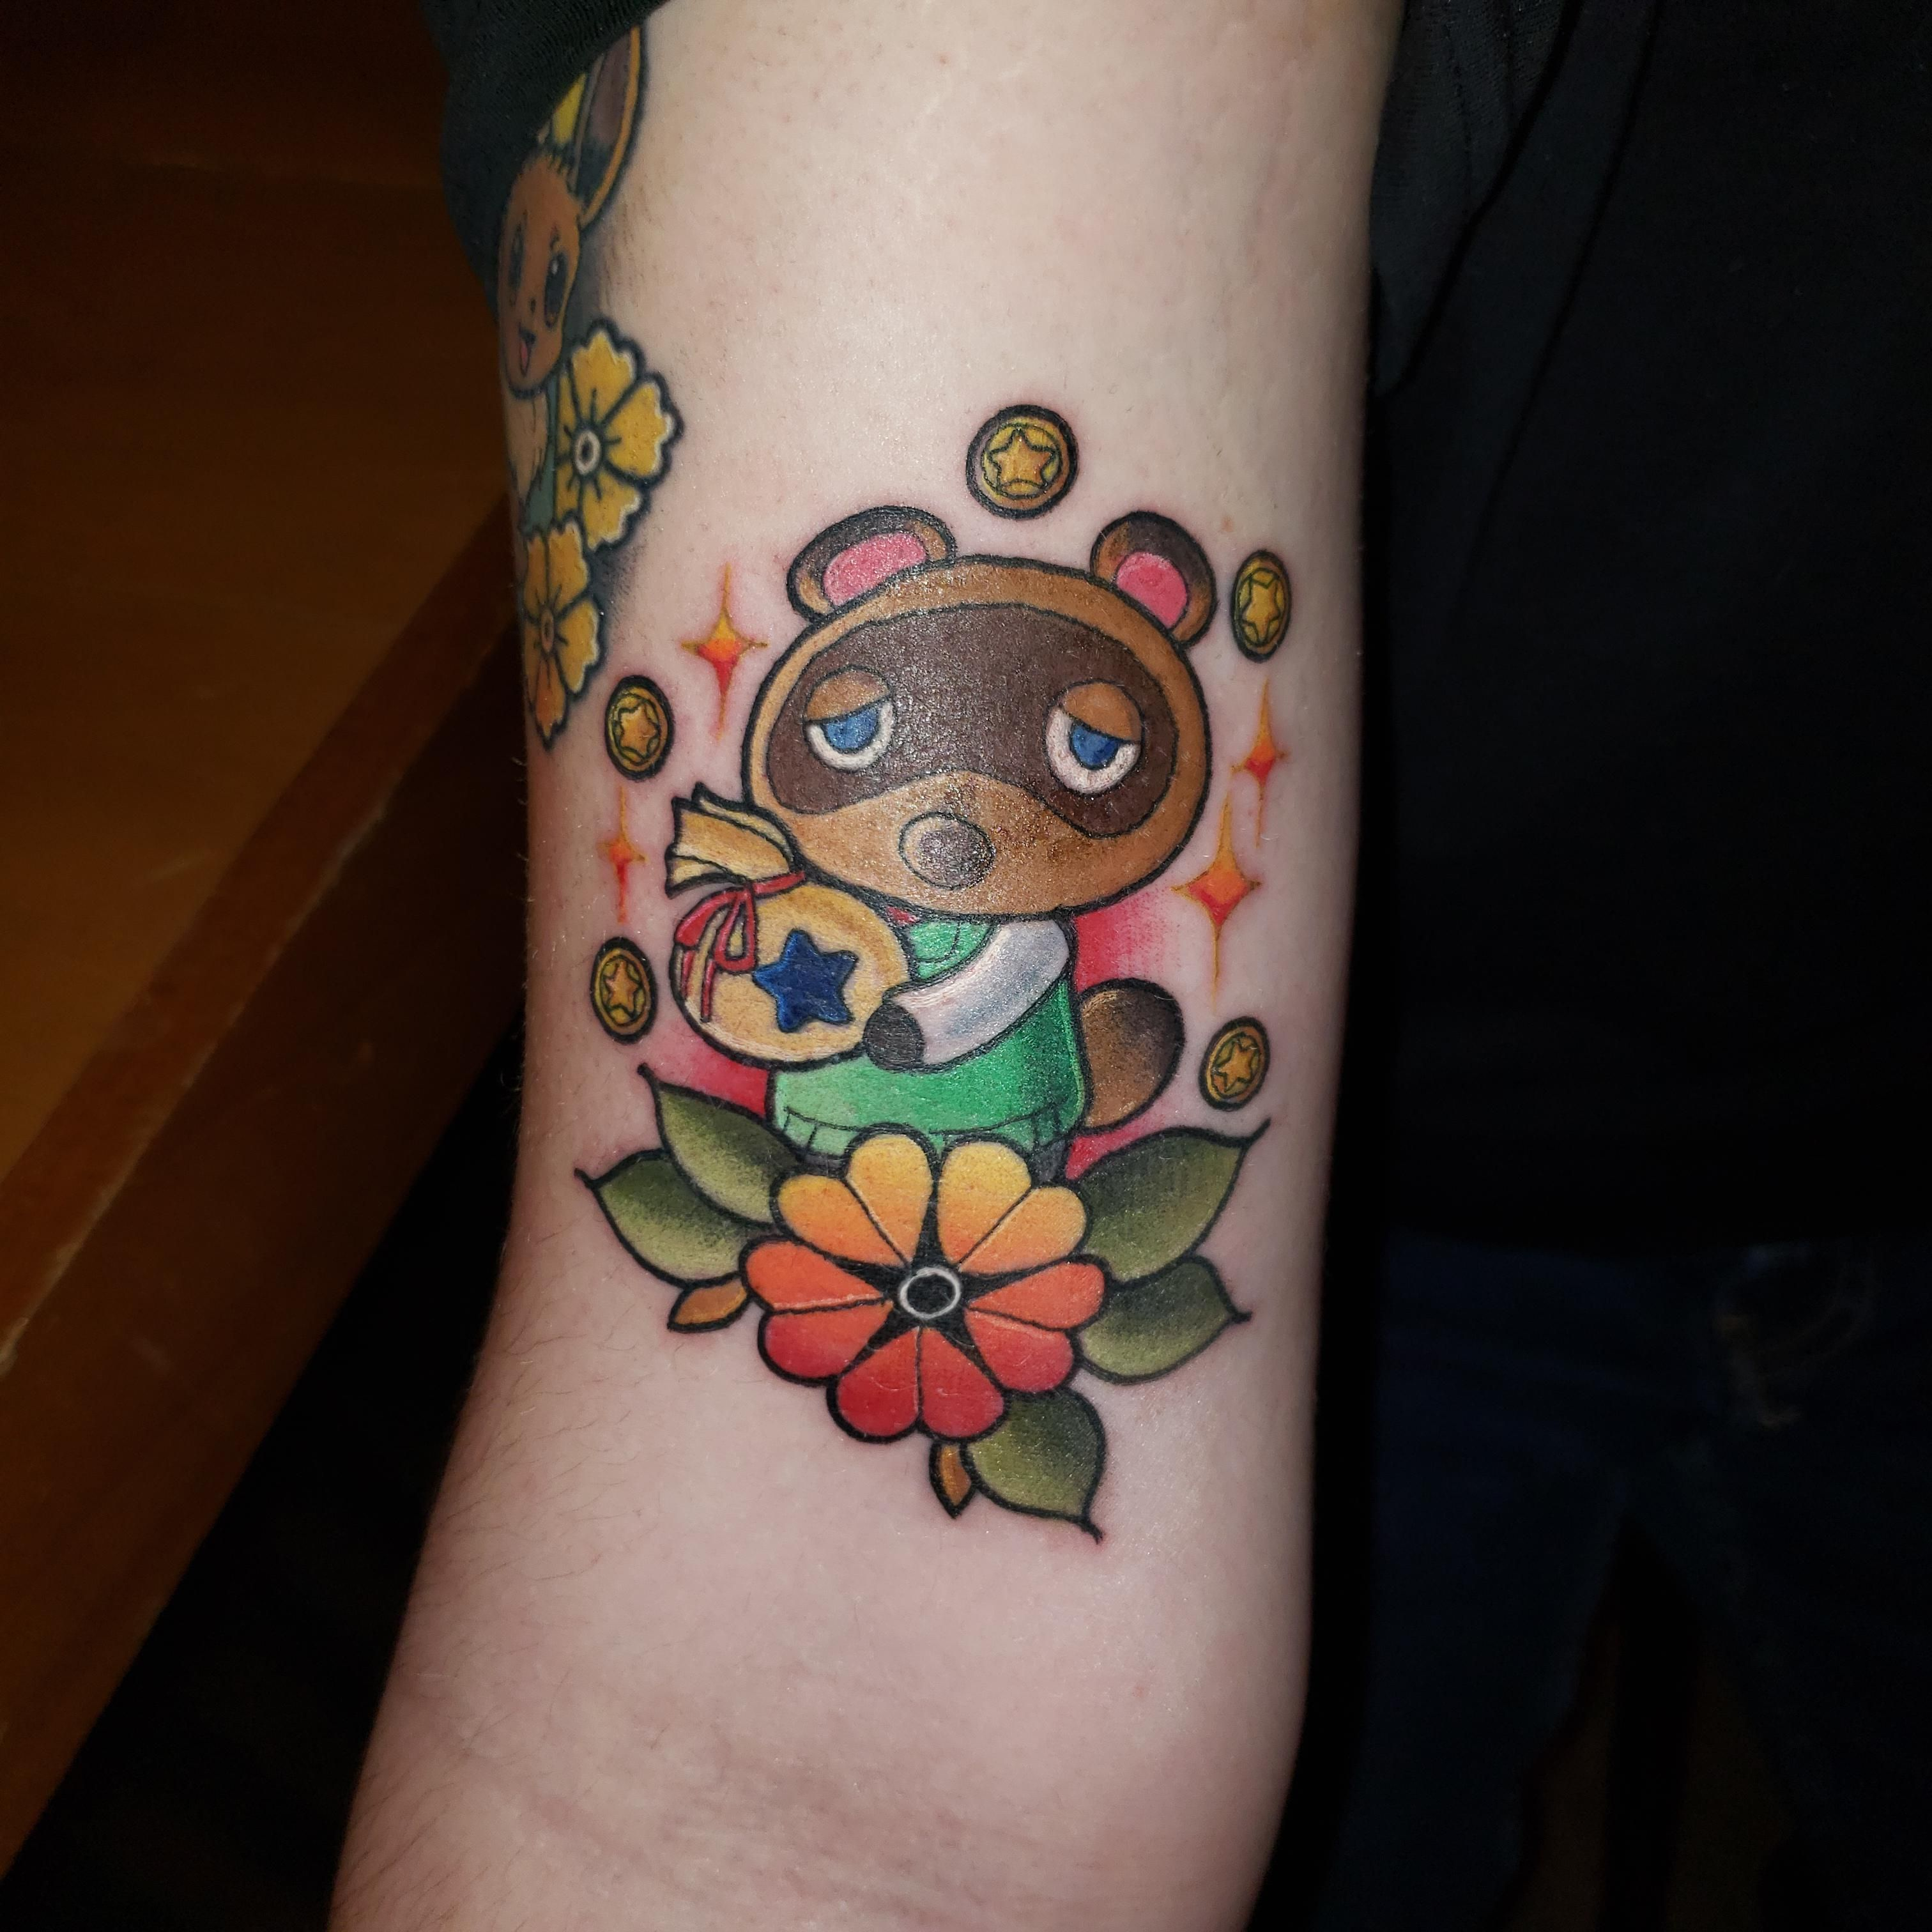 Another Nerdy Tattoo On My Arm Tom Nook From Animal Crossing This Time Once Again Done By Cody Body Gallery Tattoo And Nerdy Tattoos Tattoos Strawberry Tattoo